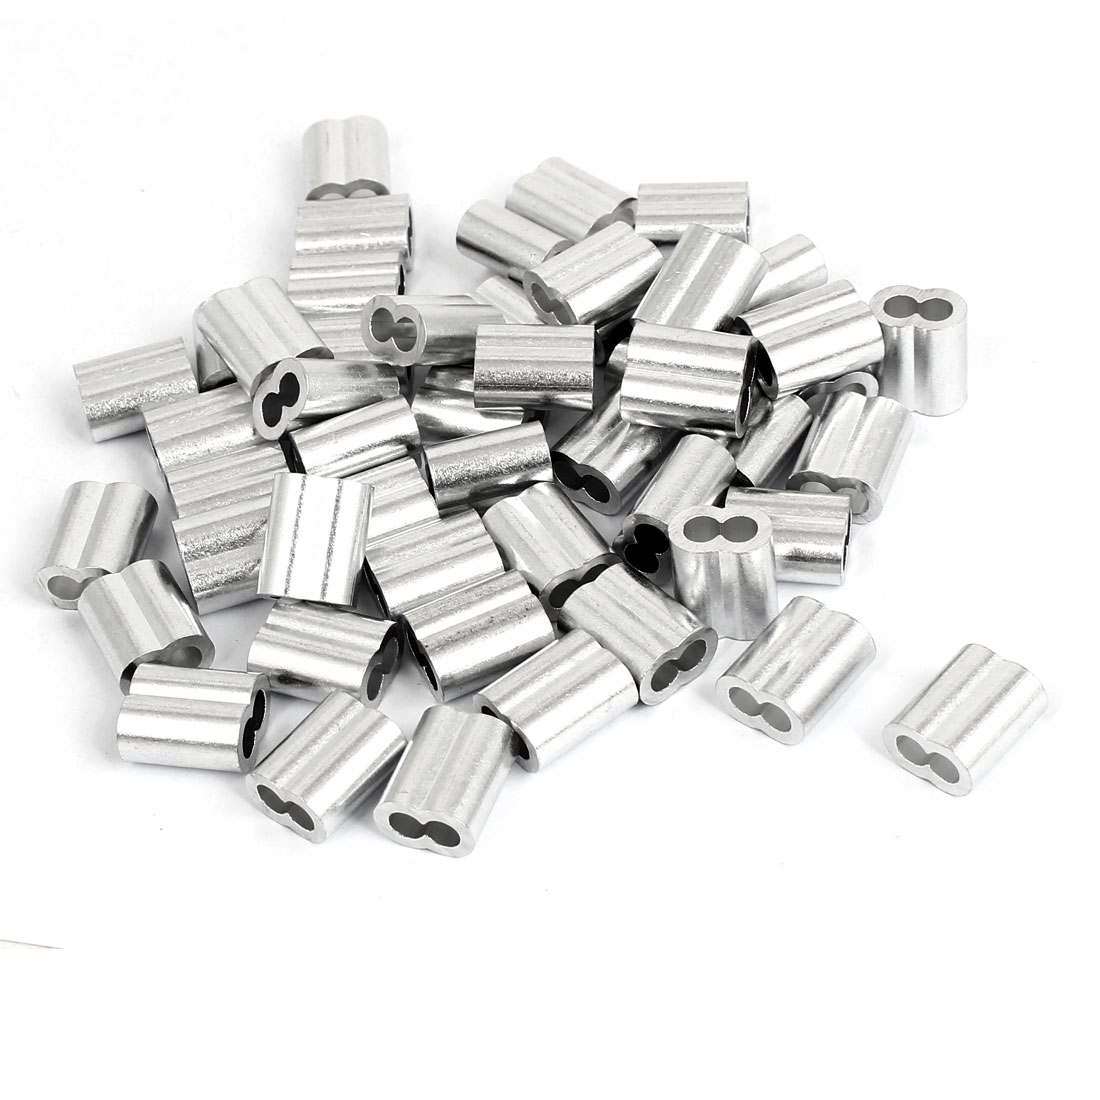 "5/32"" Aluminum Sleeves Silver Tone 50 Pcs for Wire Rope"